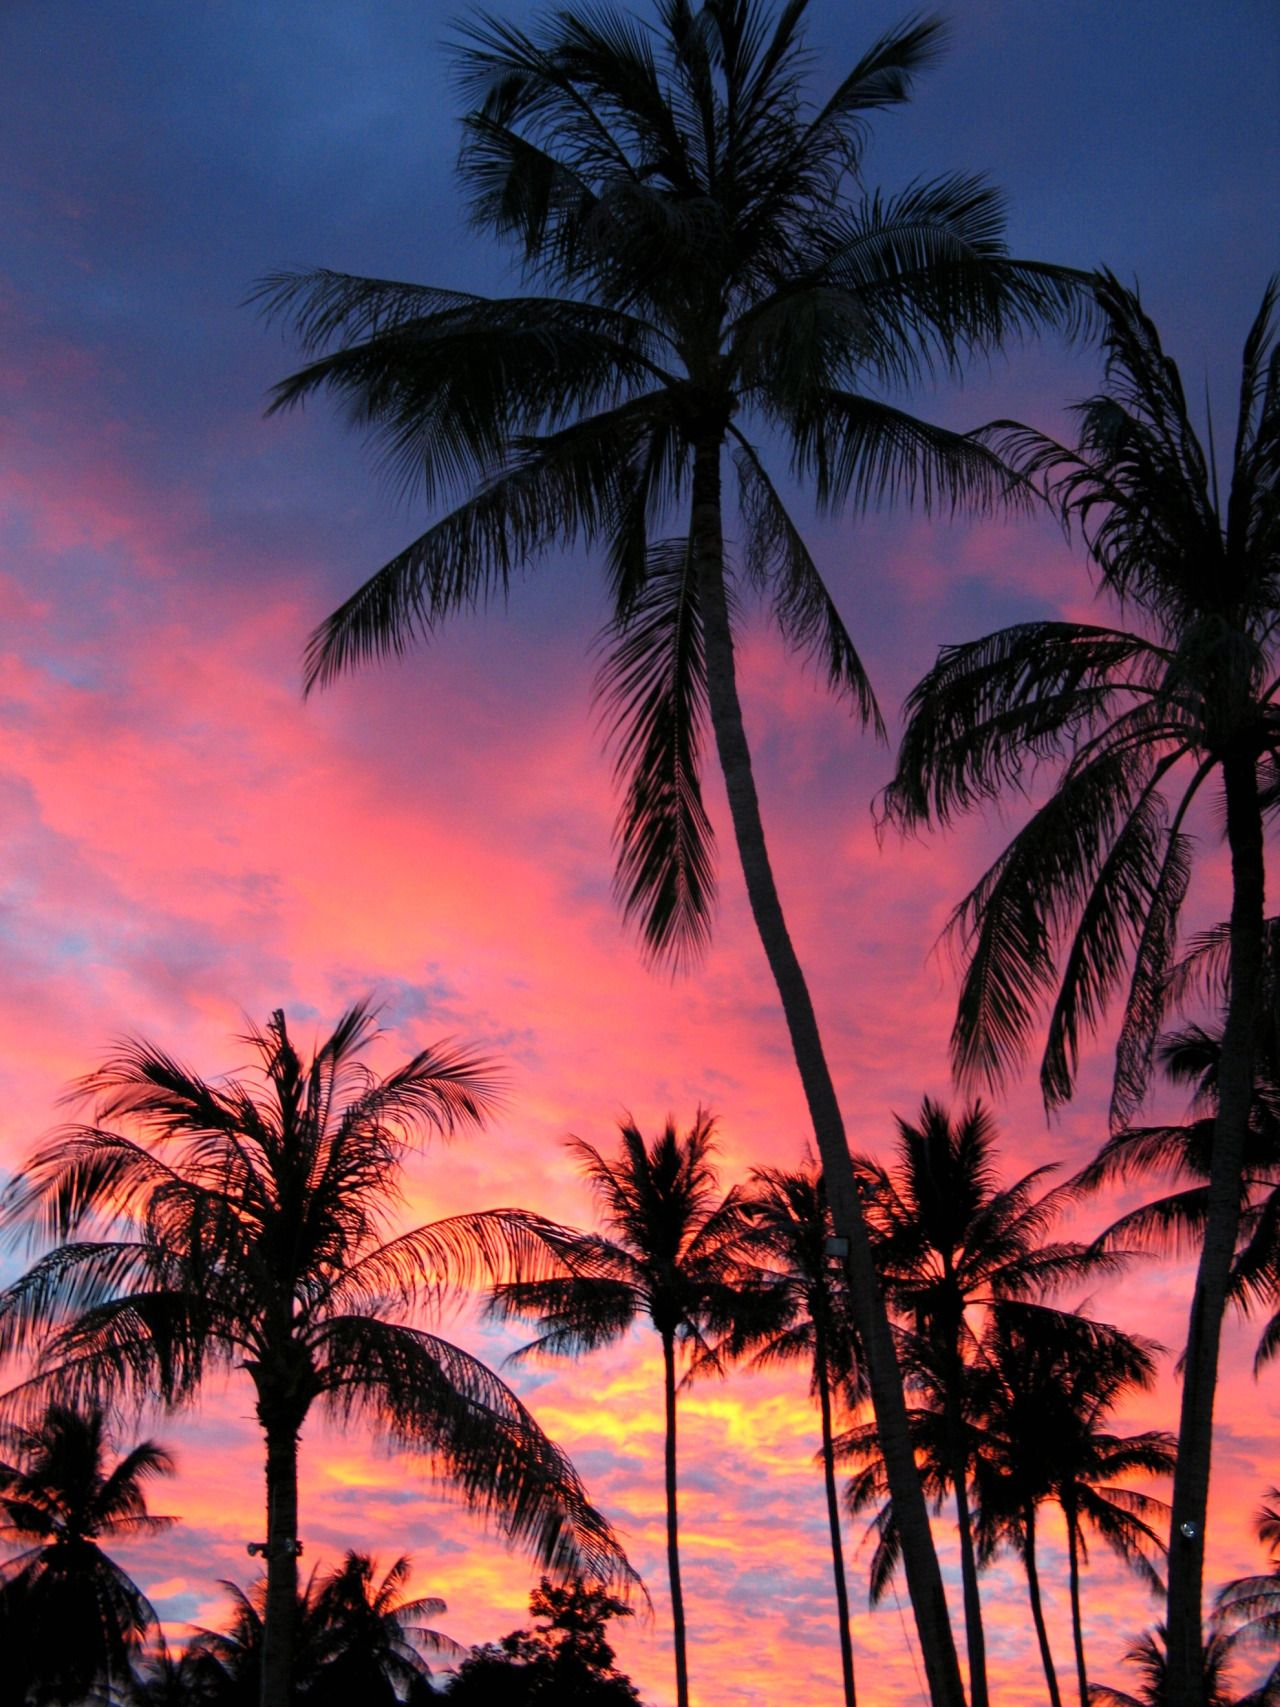 Palm Trees In The Sunset, Koh Samui By Stuart Hamilton